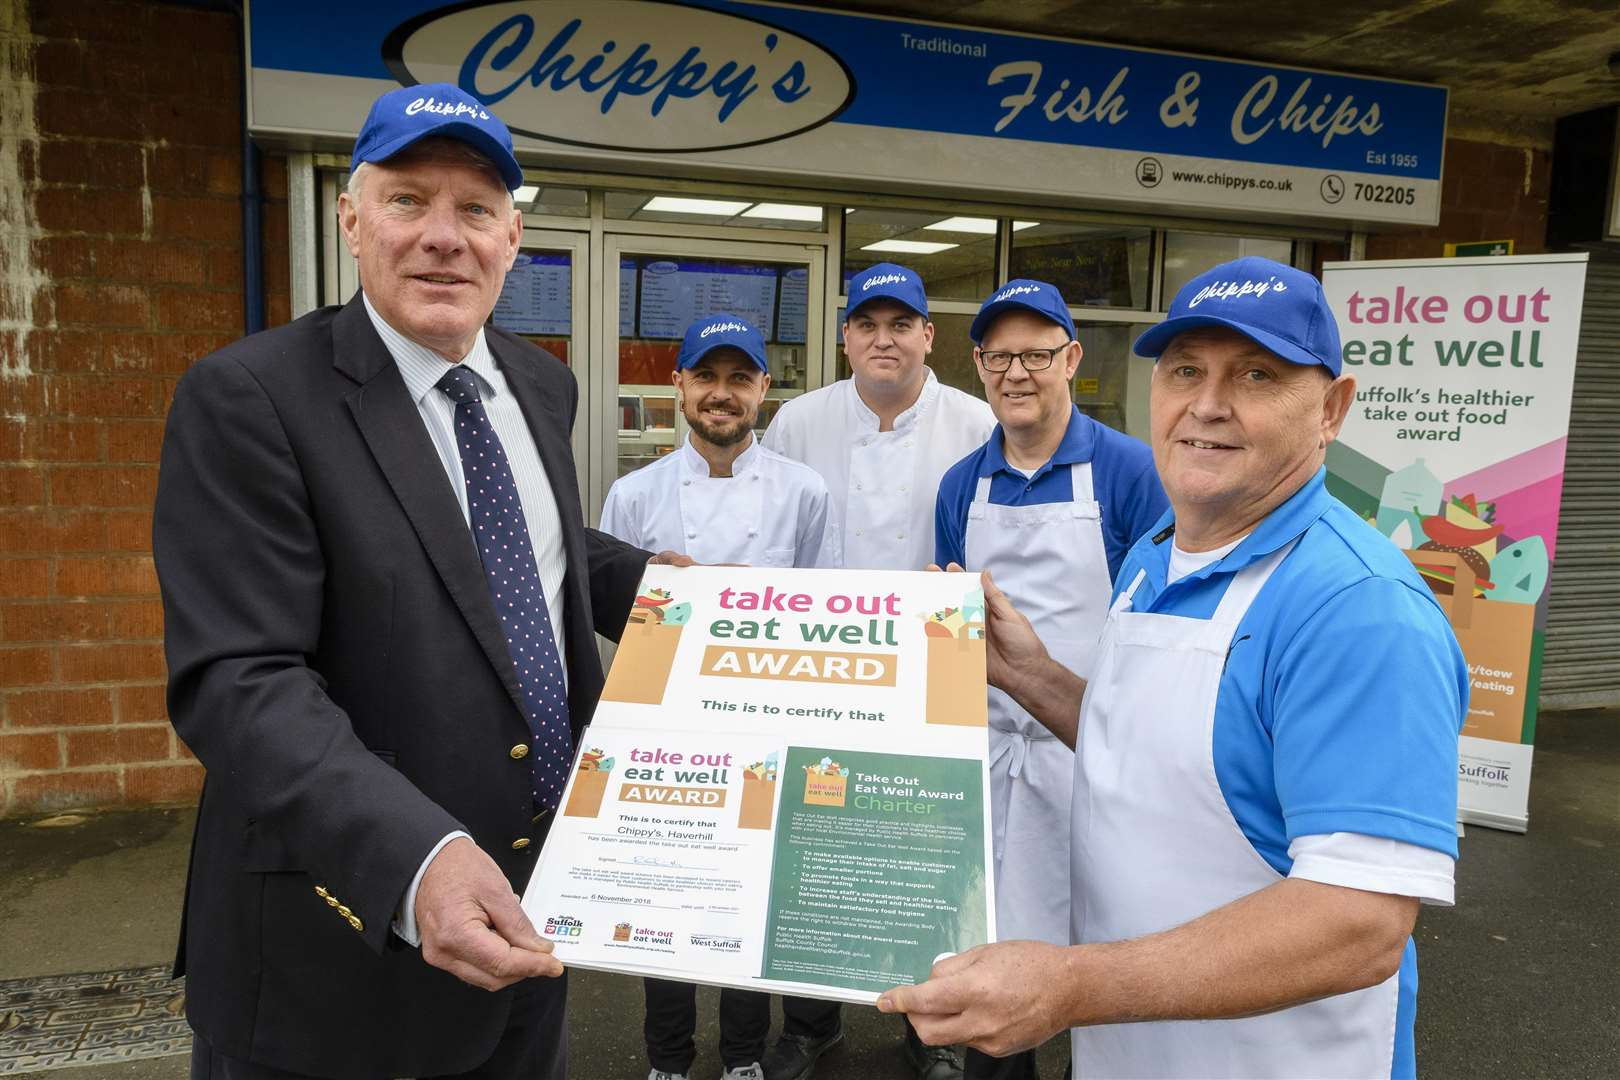 Cllr John Griffiths, Leader of St Edmundsbury Borough Council awarding the first Take Out Eat Well Awards in West Suffolk, which recognises takeaway food businesses that offer healthier food choices, to Glenn Edwards of Chippy's Fish and Chips in Strasbourg Square, Haverhill. With him are staff, from left; Lee Taylor, Barry Lumm and Christopher Edwards.